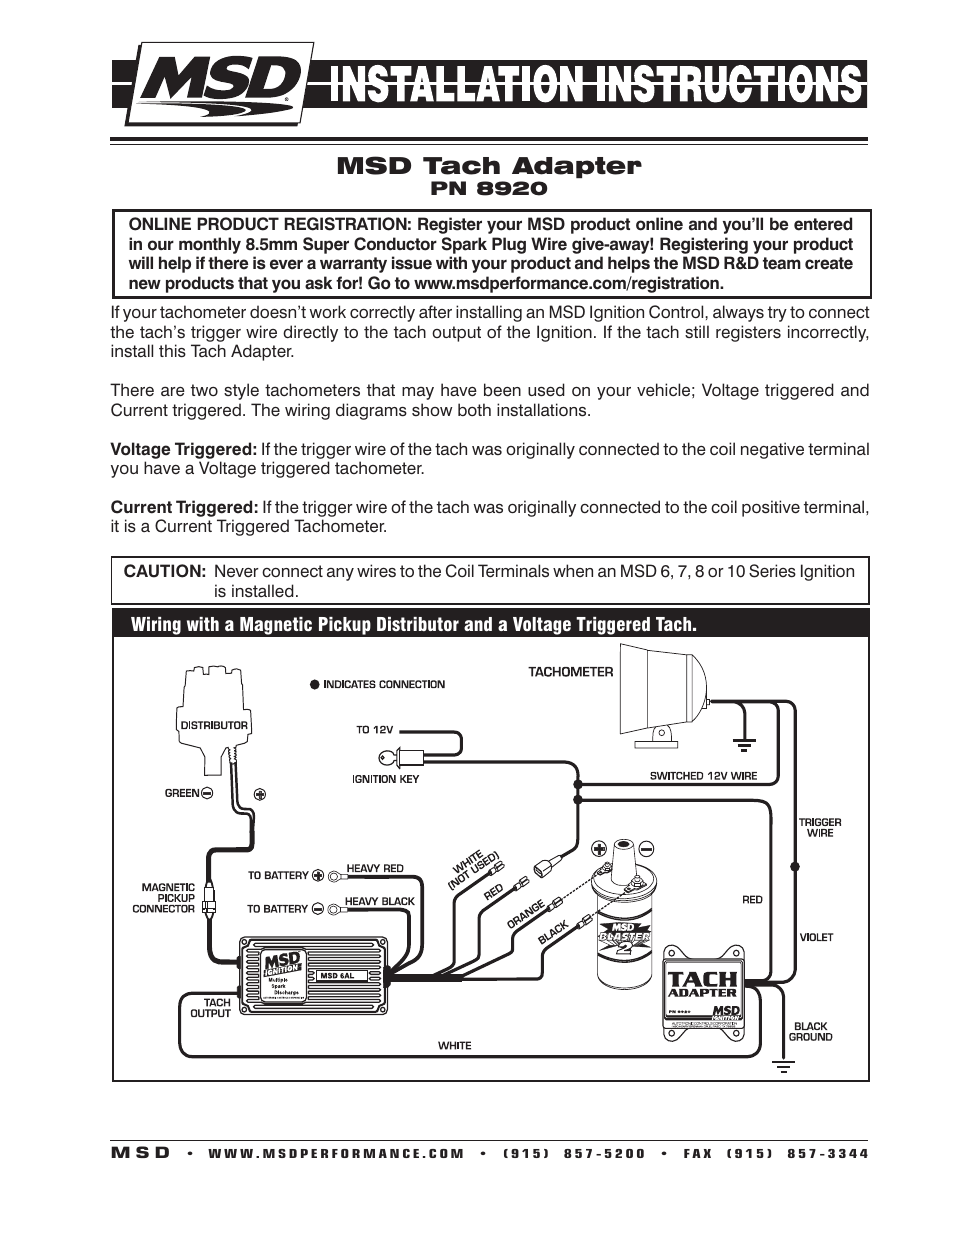 msd 8920 tach adapter, magnetic trigger installation user manual 2msd 8920 tach adapter, magnetic trigger installation user manual 2 pages